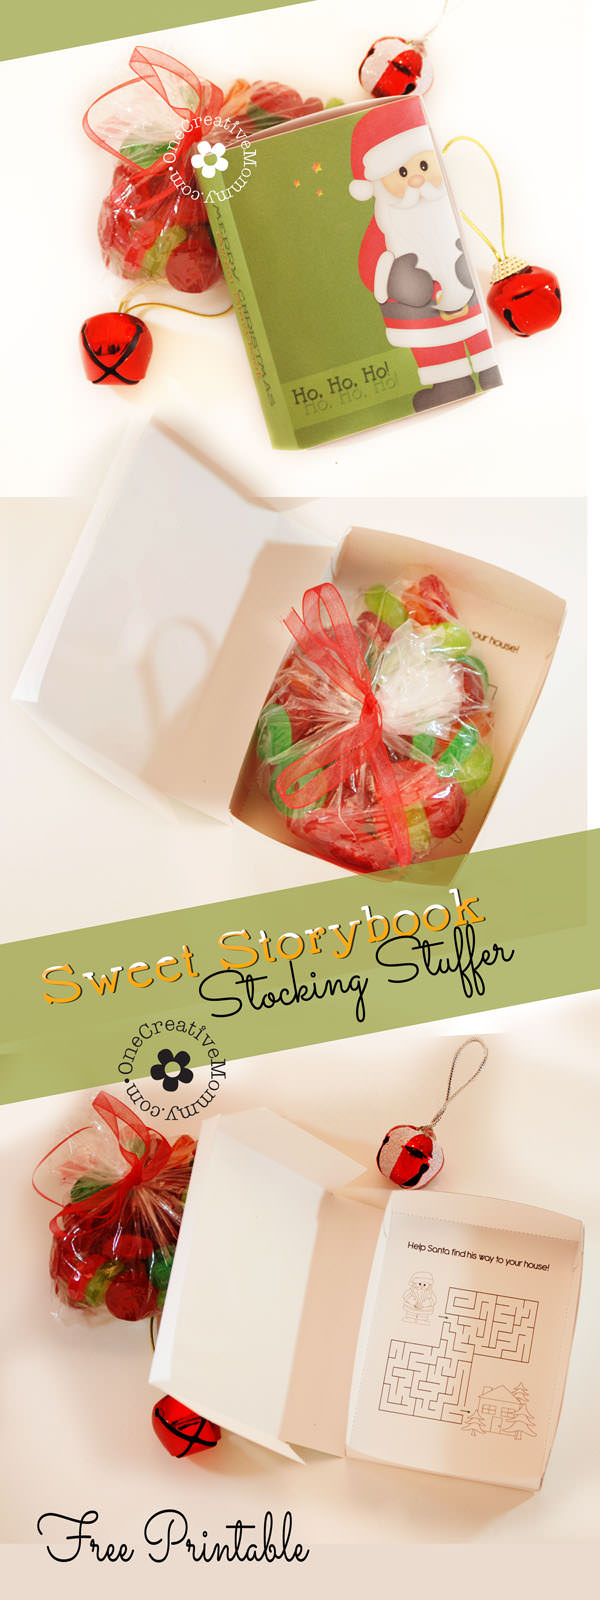 DIY Sweet Storybook Stocking Stuffer Idea {Download the free printable to create the book-shaped box, and then fill it with your kiddo's favorite candy.} OneCreativeMommy.com #stockingstufferideas #christmas #lifesavers